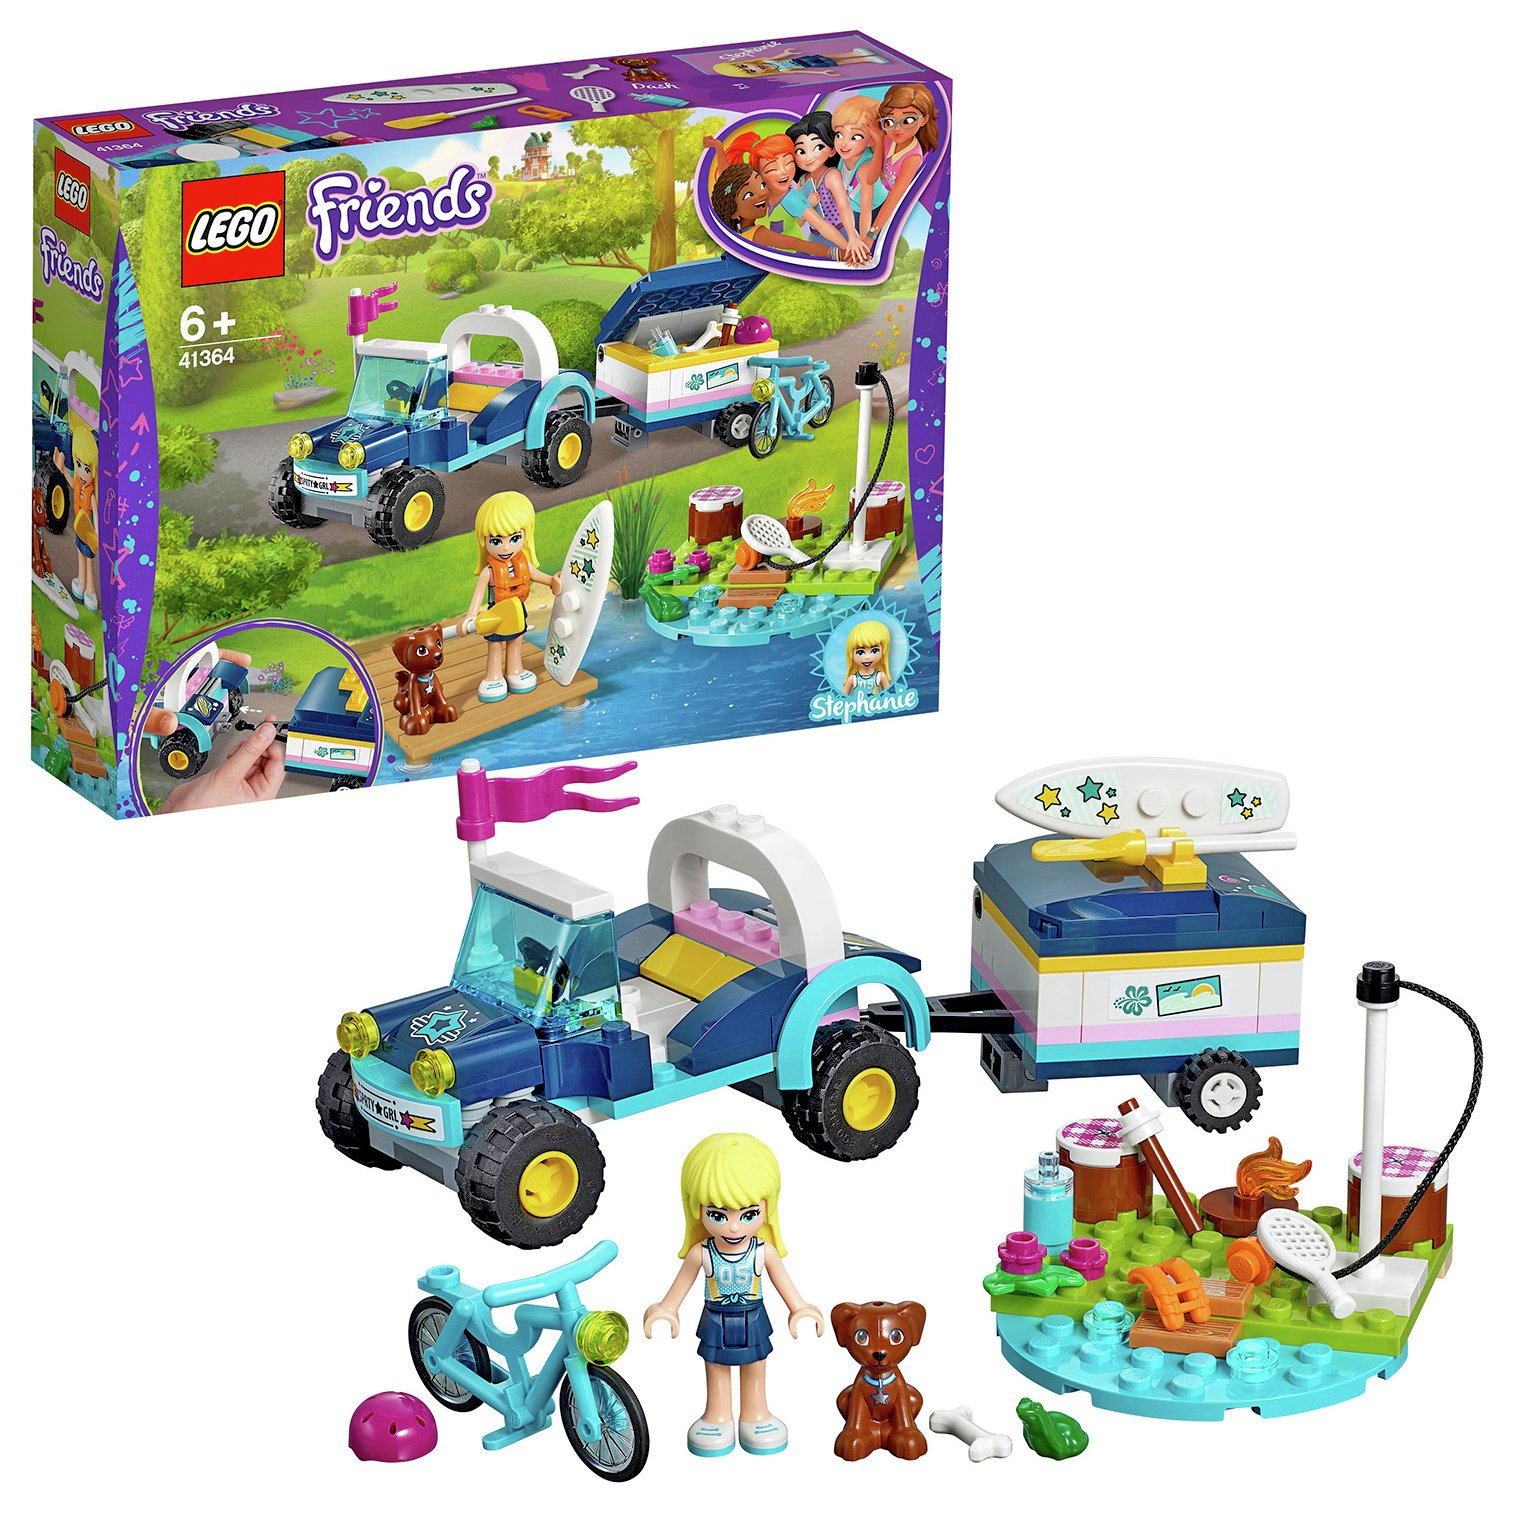 LEGO Friends Stephanie's Toy Buggy and Trailer - 41364